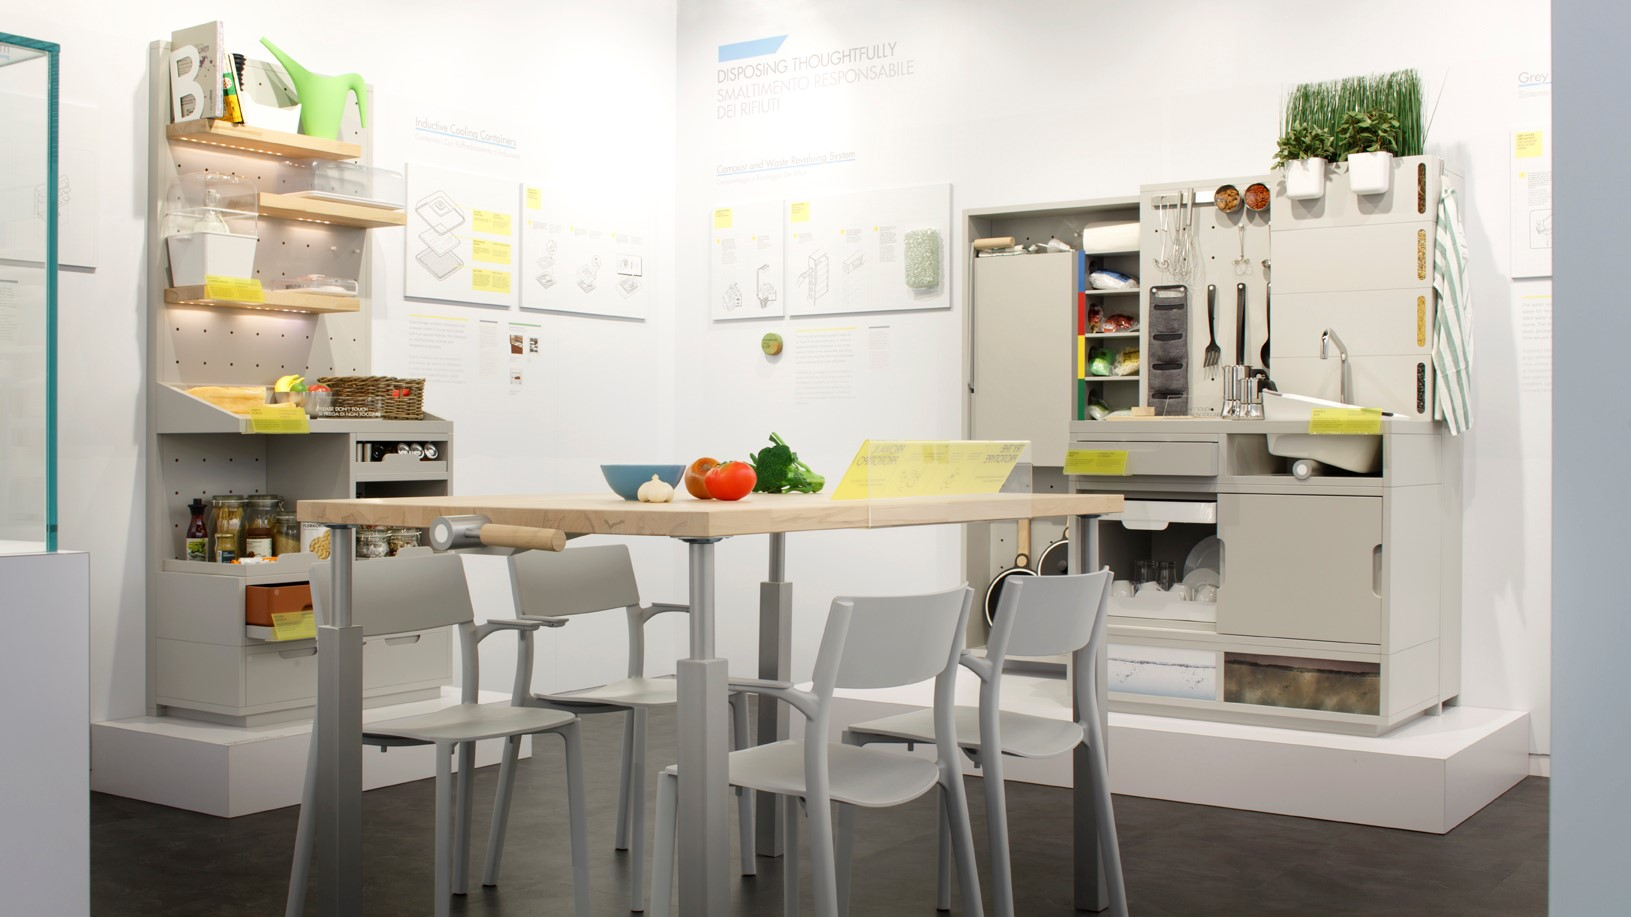 concept-kitchen-2025-at-ikea-temporary-2